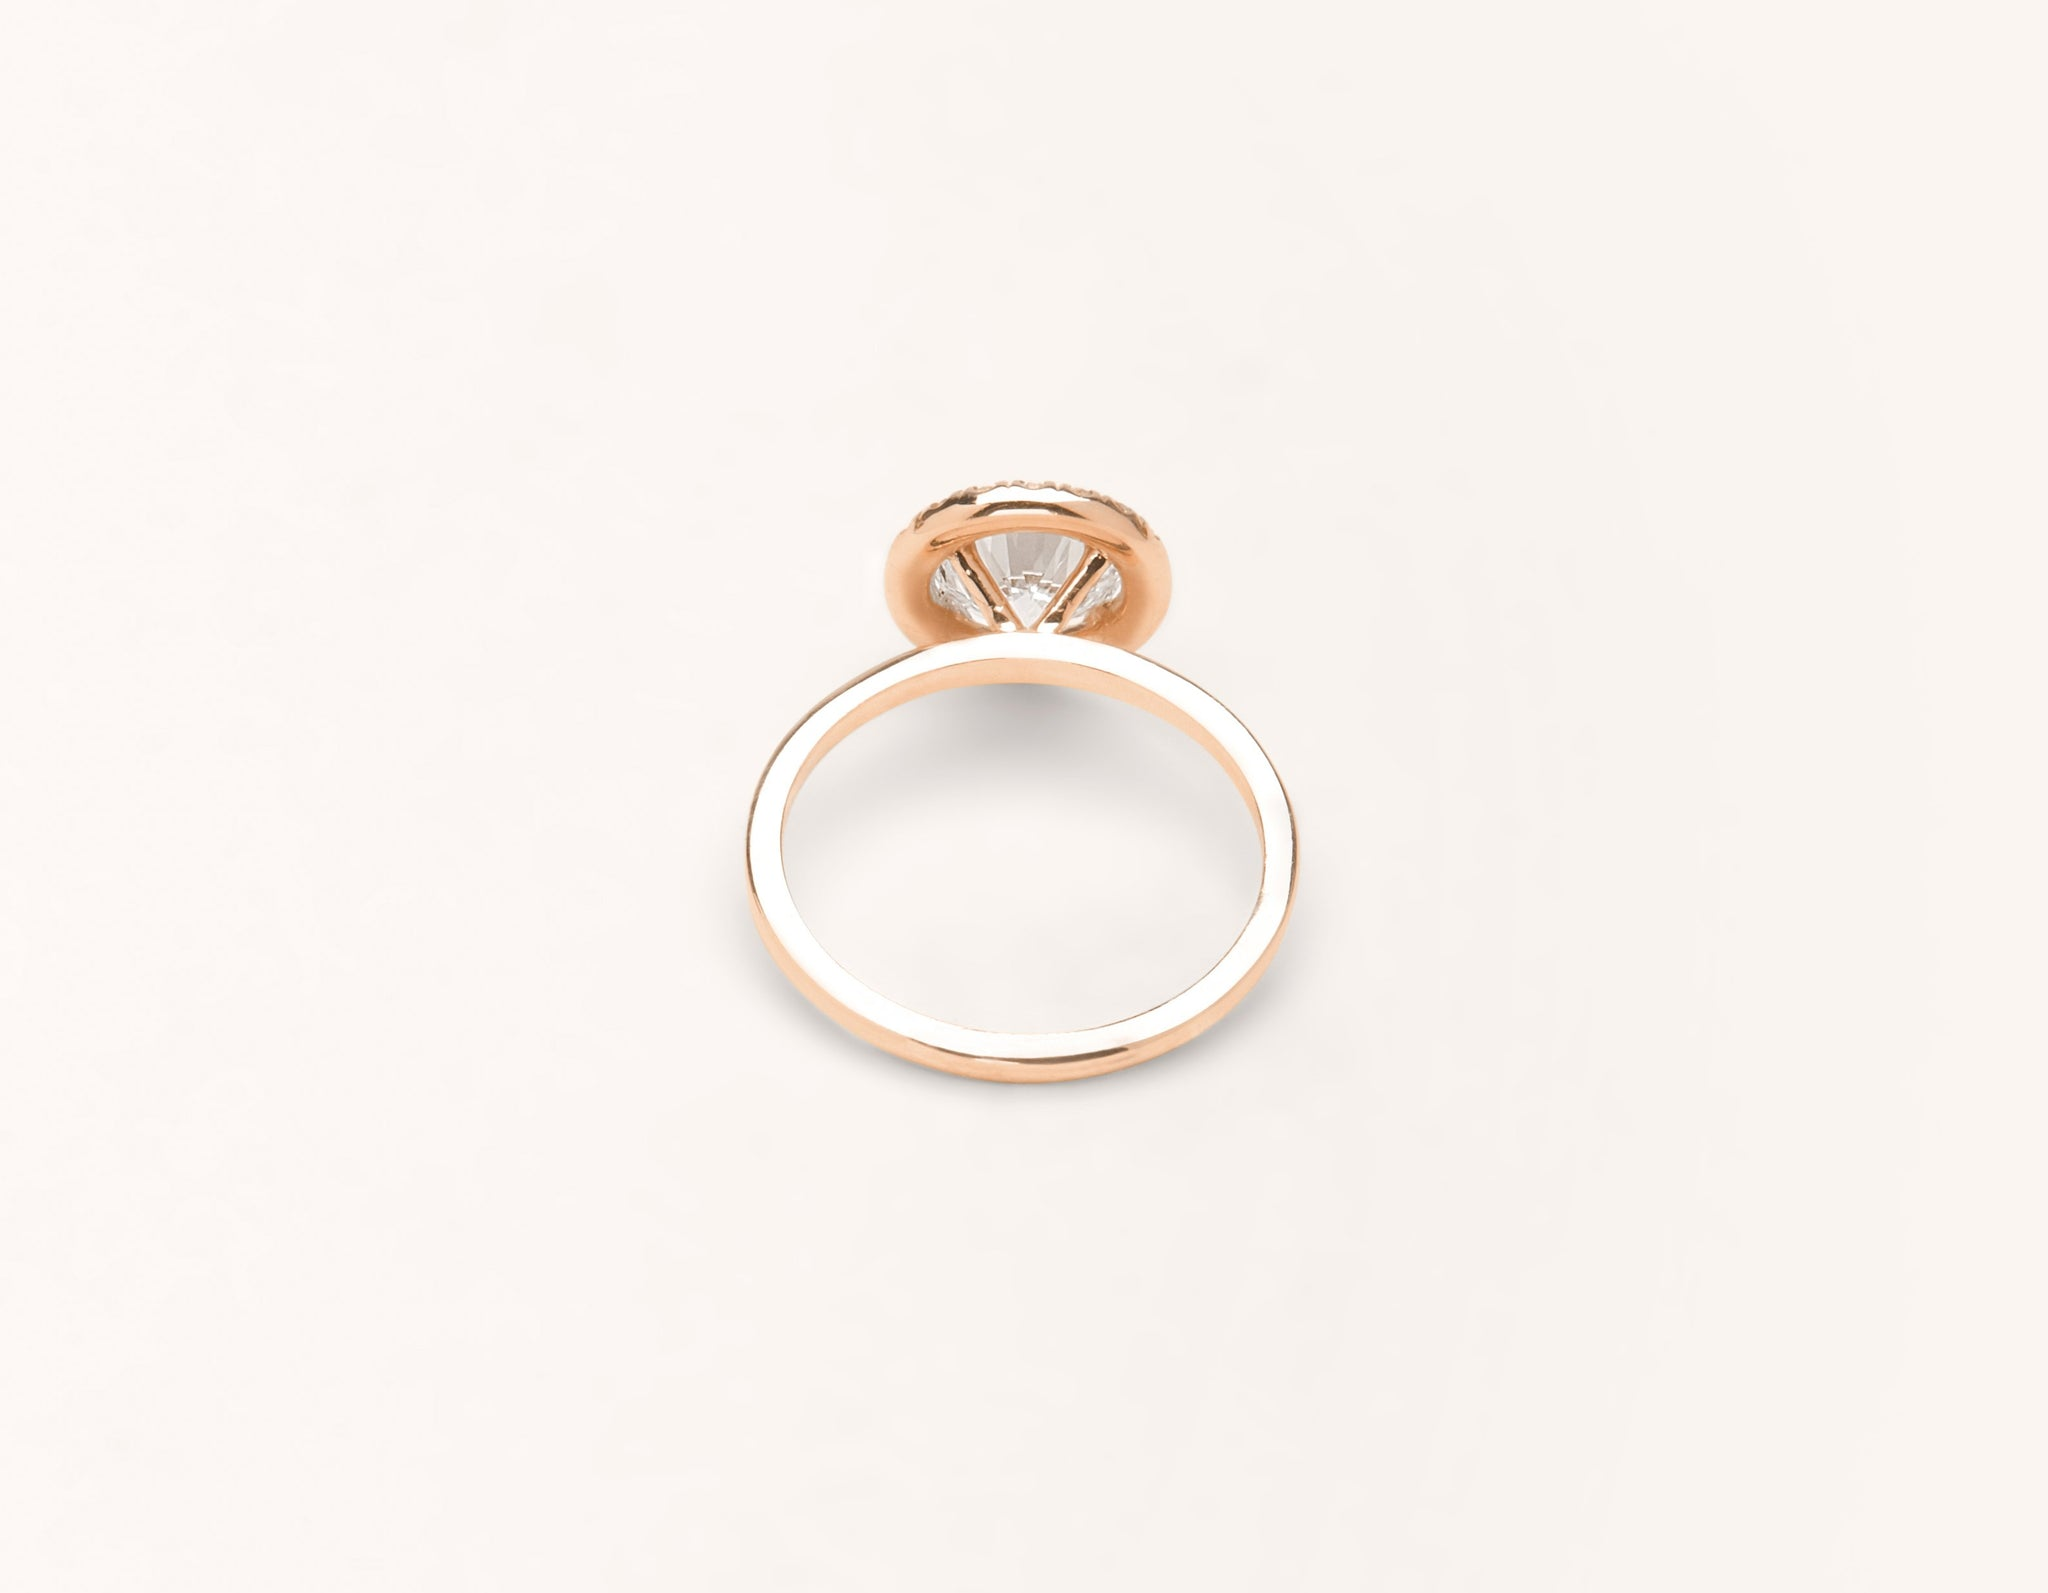 Minimalist 18k solid rose gold The Halo engagement ring 1 ct round diamond Vrai and Oro